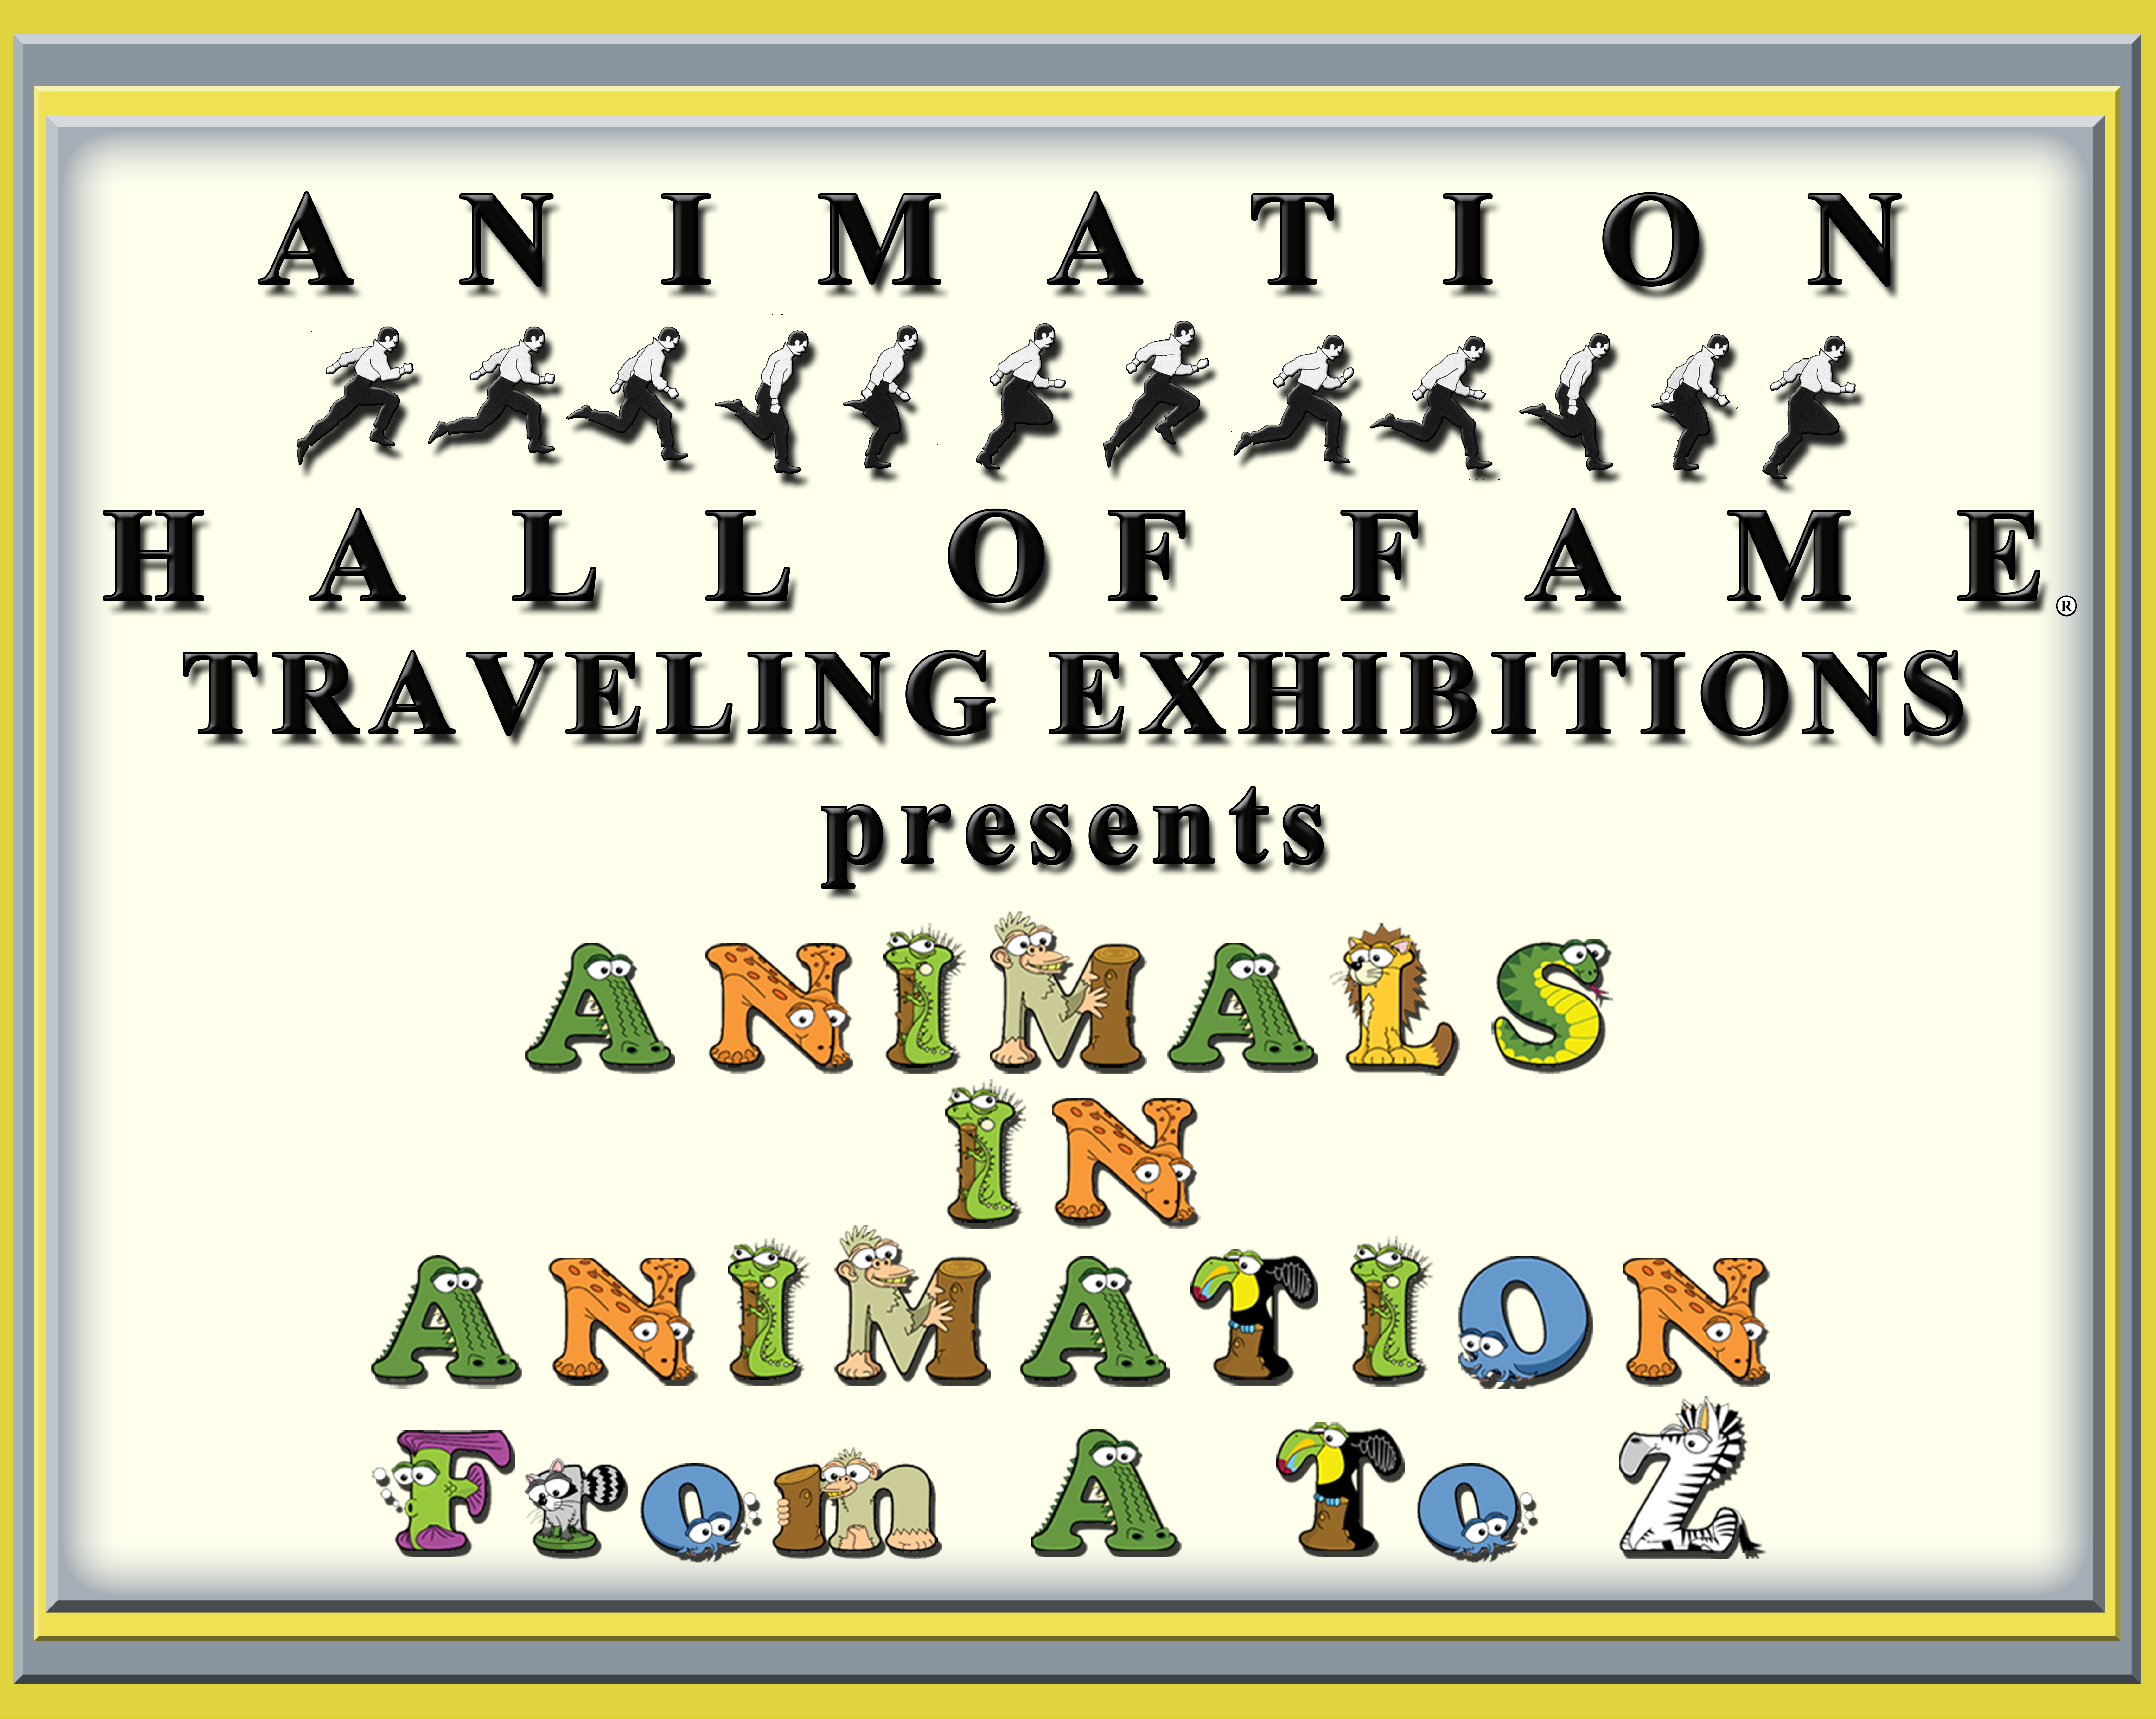 Animation Hall of Fame Presents Animals in Animation From A to Z